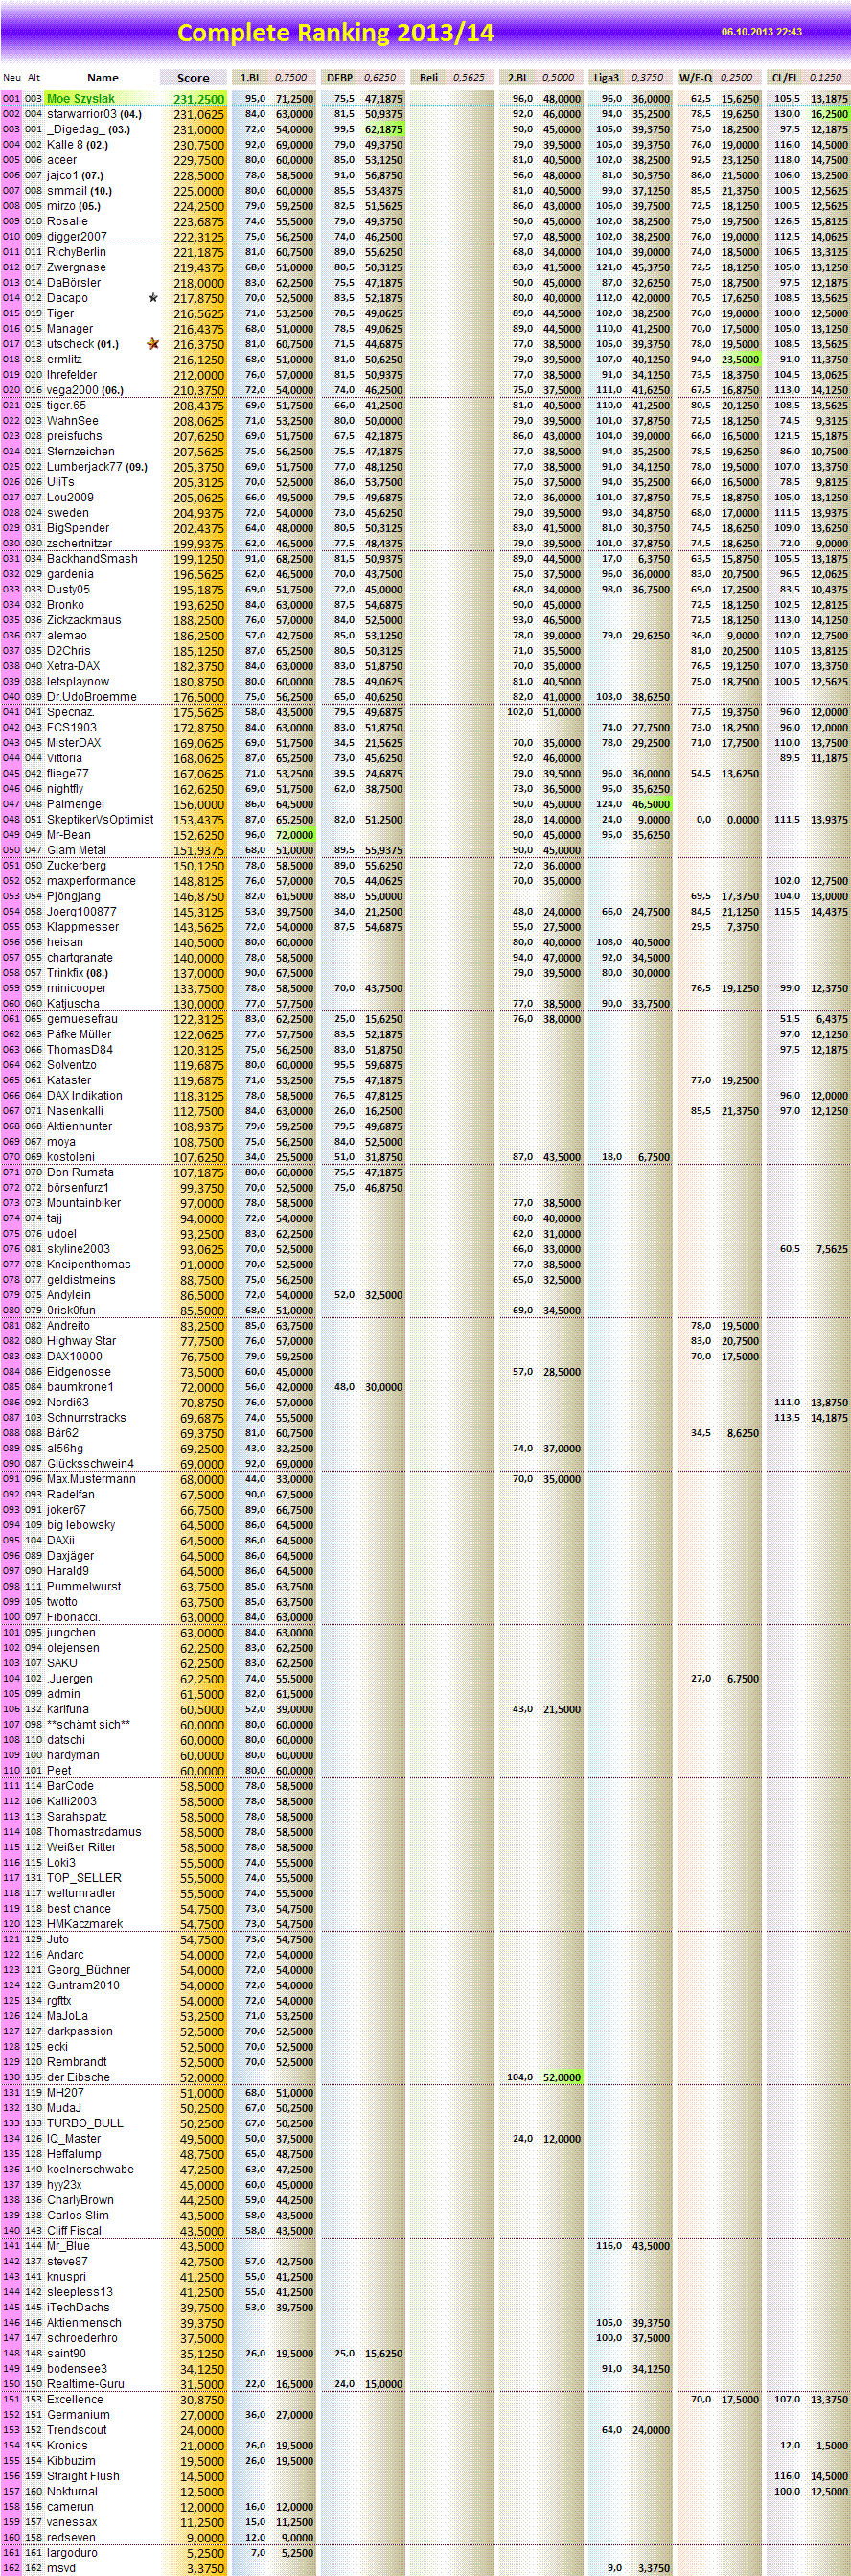 completeranking2013-14.png